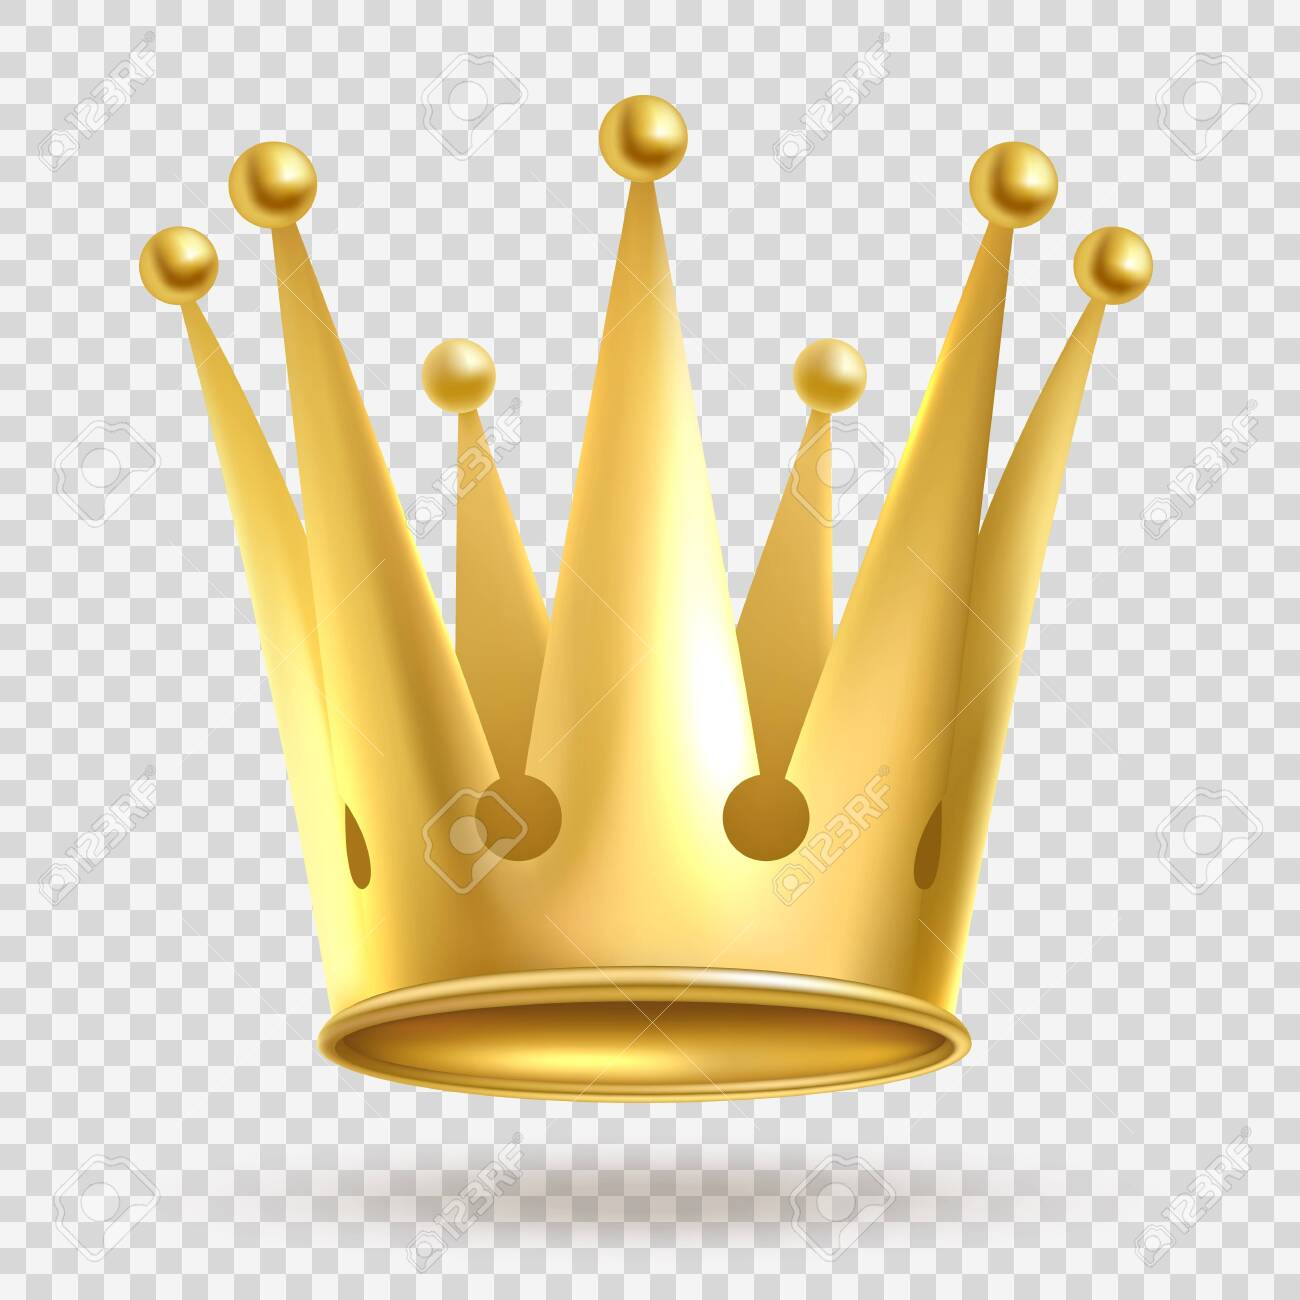 Golden crown. Elegant gold metal royal crowning on transparent background vector realistic wealth imperial jewelry royalty illustration - 131296029